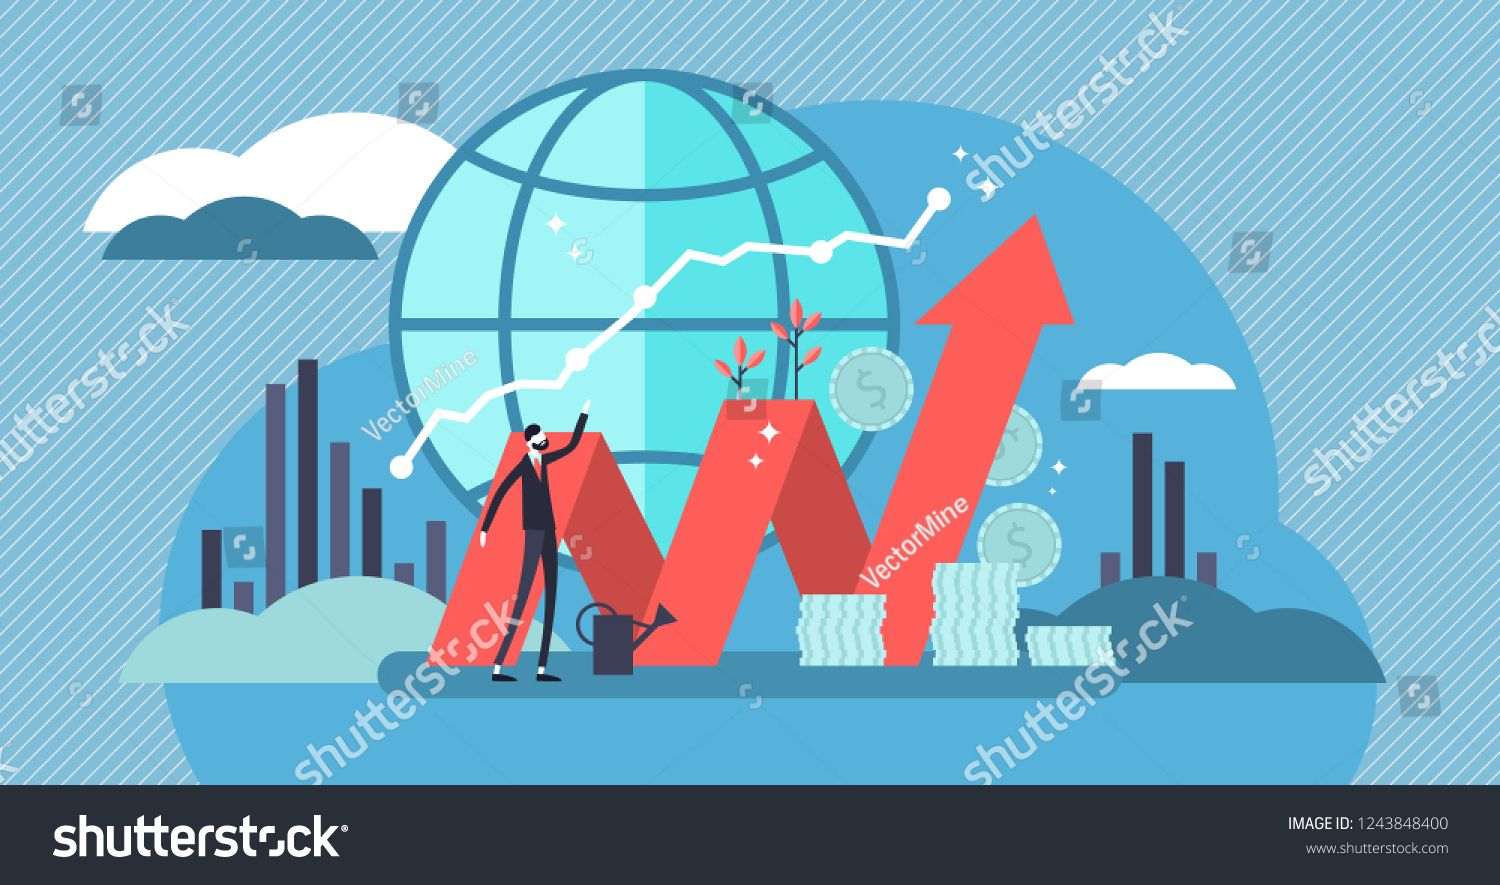 Stock Market Vector Illustration Flat Mini Money Growth Persons Concept With Positive And Successful Indicators Stock Market Vector Illustration Illustration